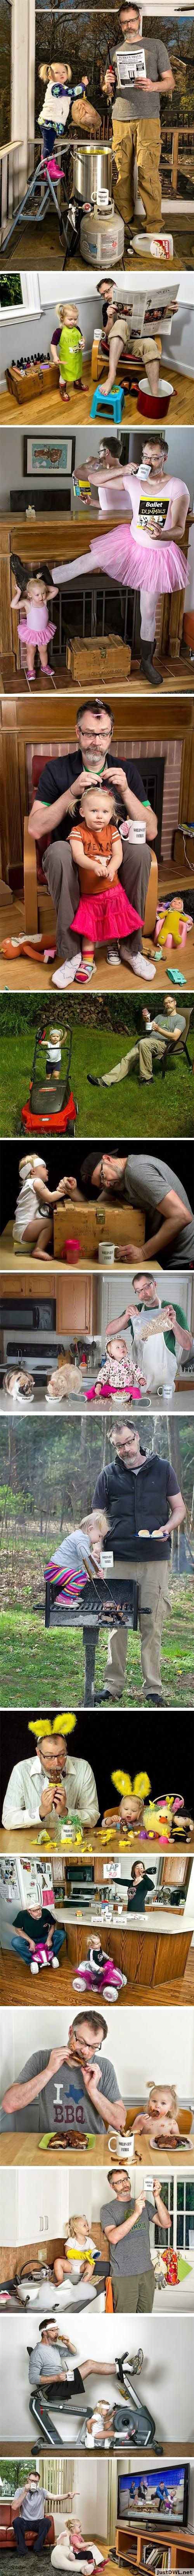 Best daddy daughter pics ever